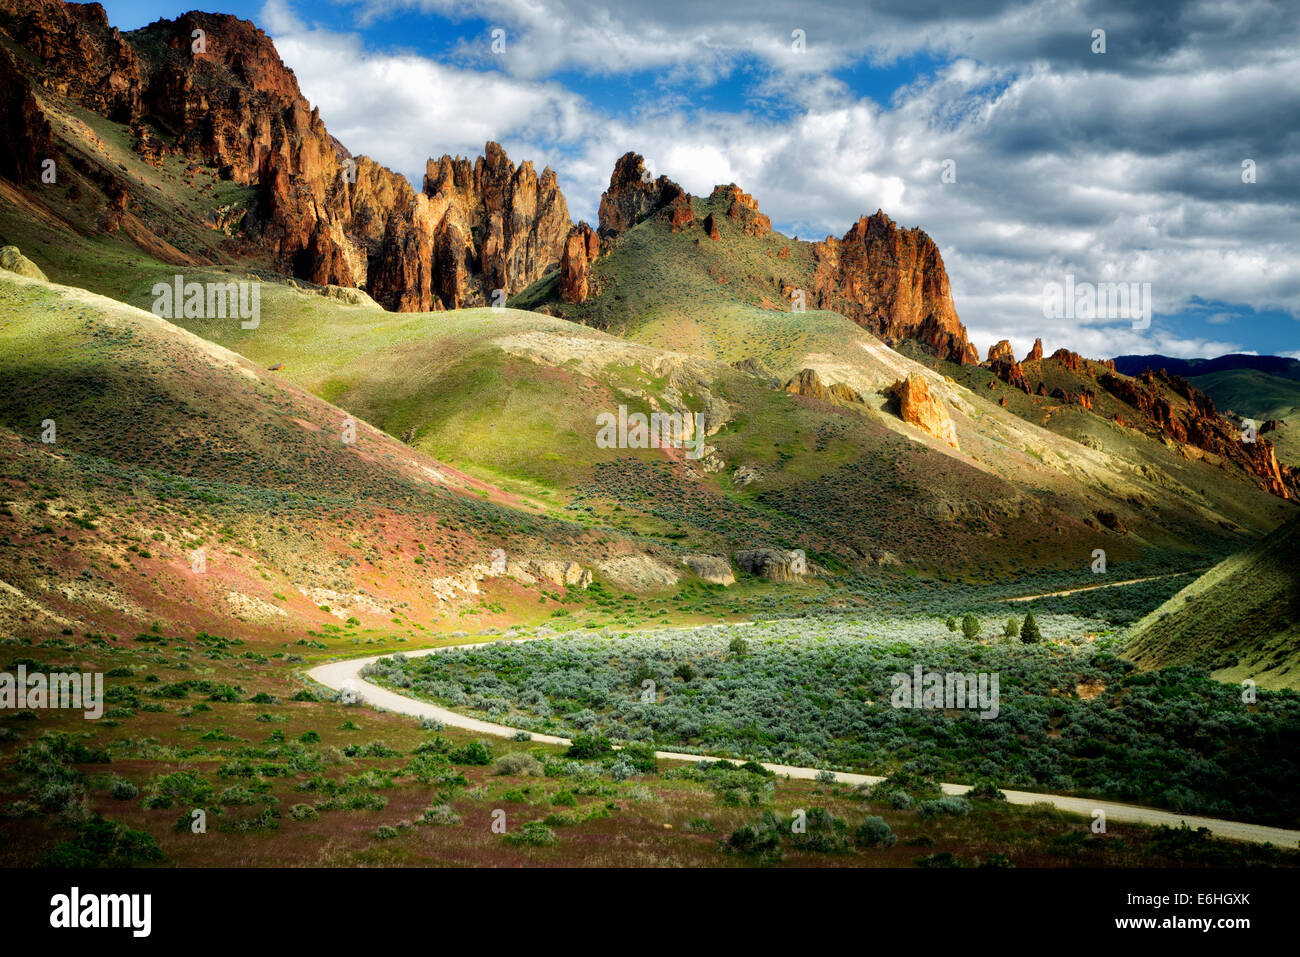 Road and rock formations in Leslie Gultch, Malhuer County, Oregon - Stock Image